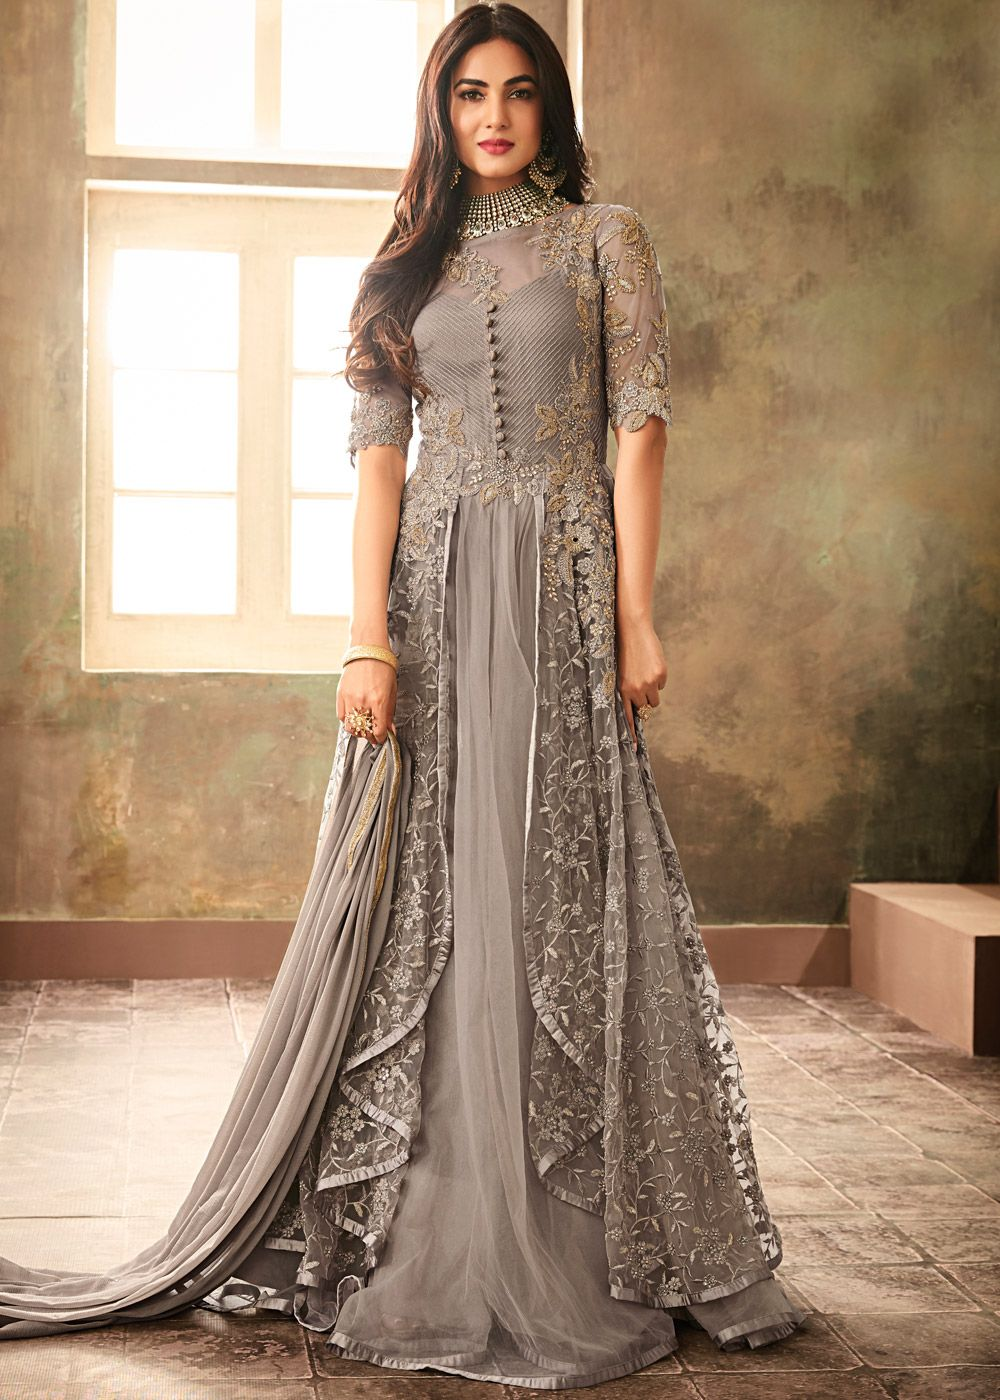 e962b539da Grey colored flared twin layered gown style kameez in net with santoon  lining underneath designed with heavy thread, zari and resham embroidery  work all ...